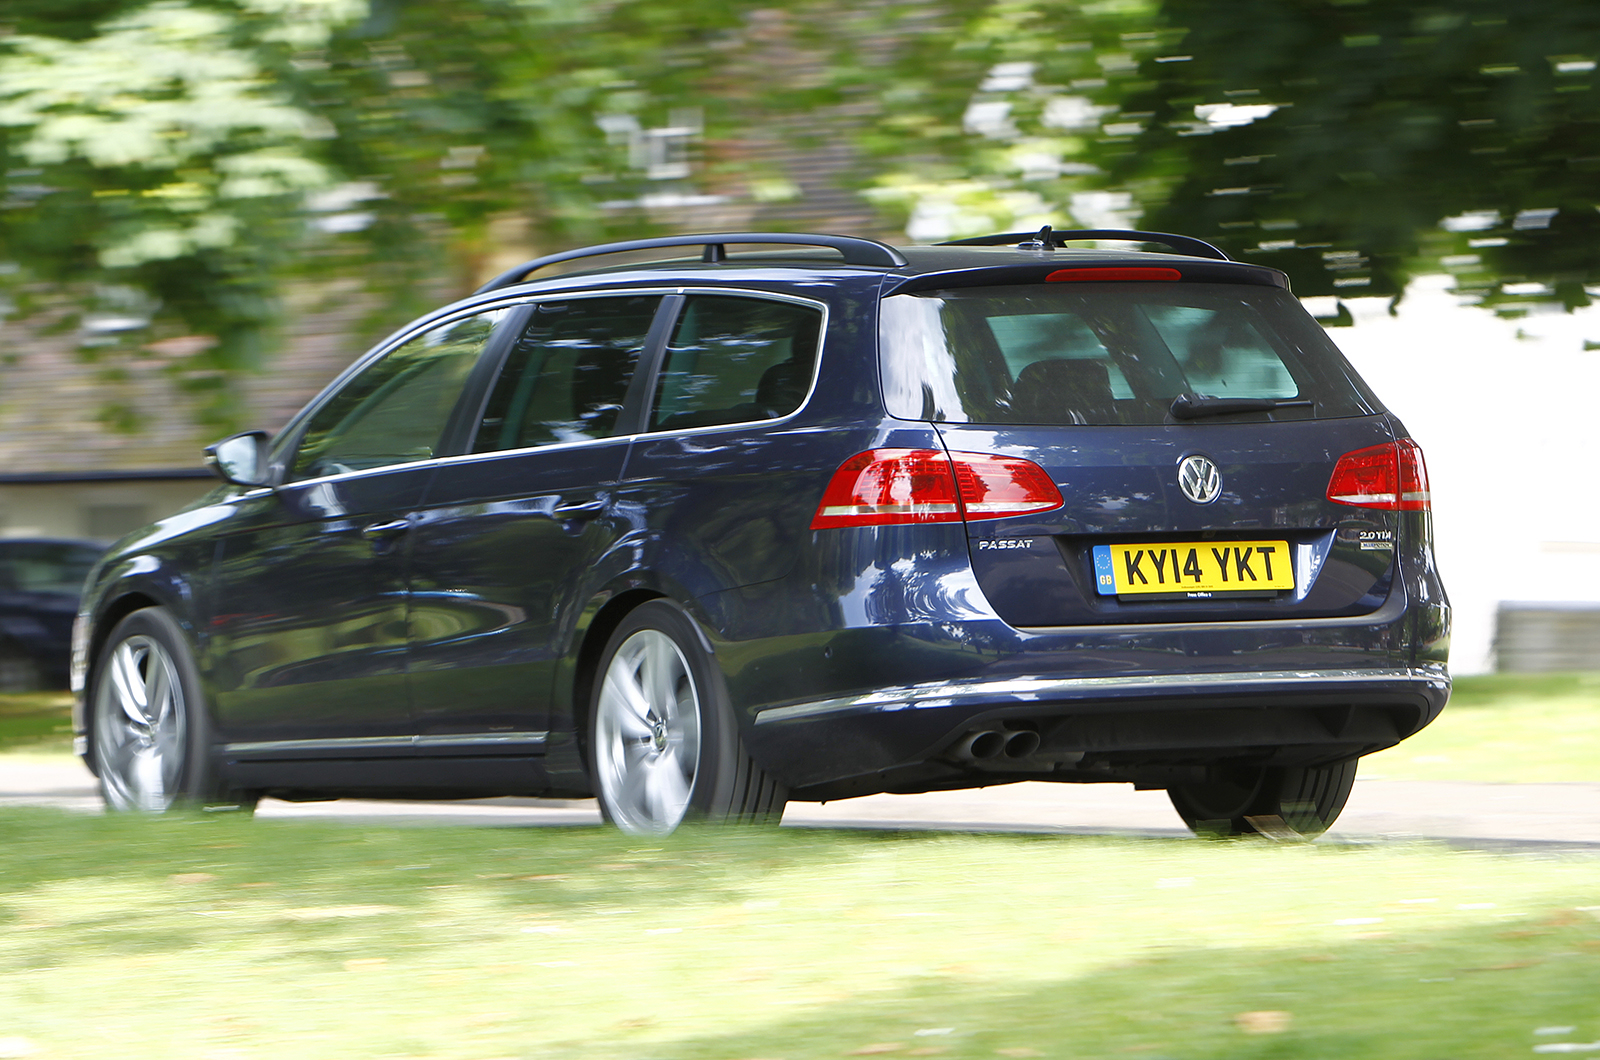 volkswagen passat estate executive style 2 0 tdi bluemotion first drive. Black Bedroom Furniture Sets. Home Design Ideas